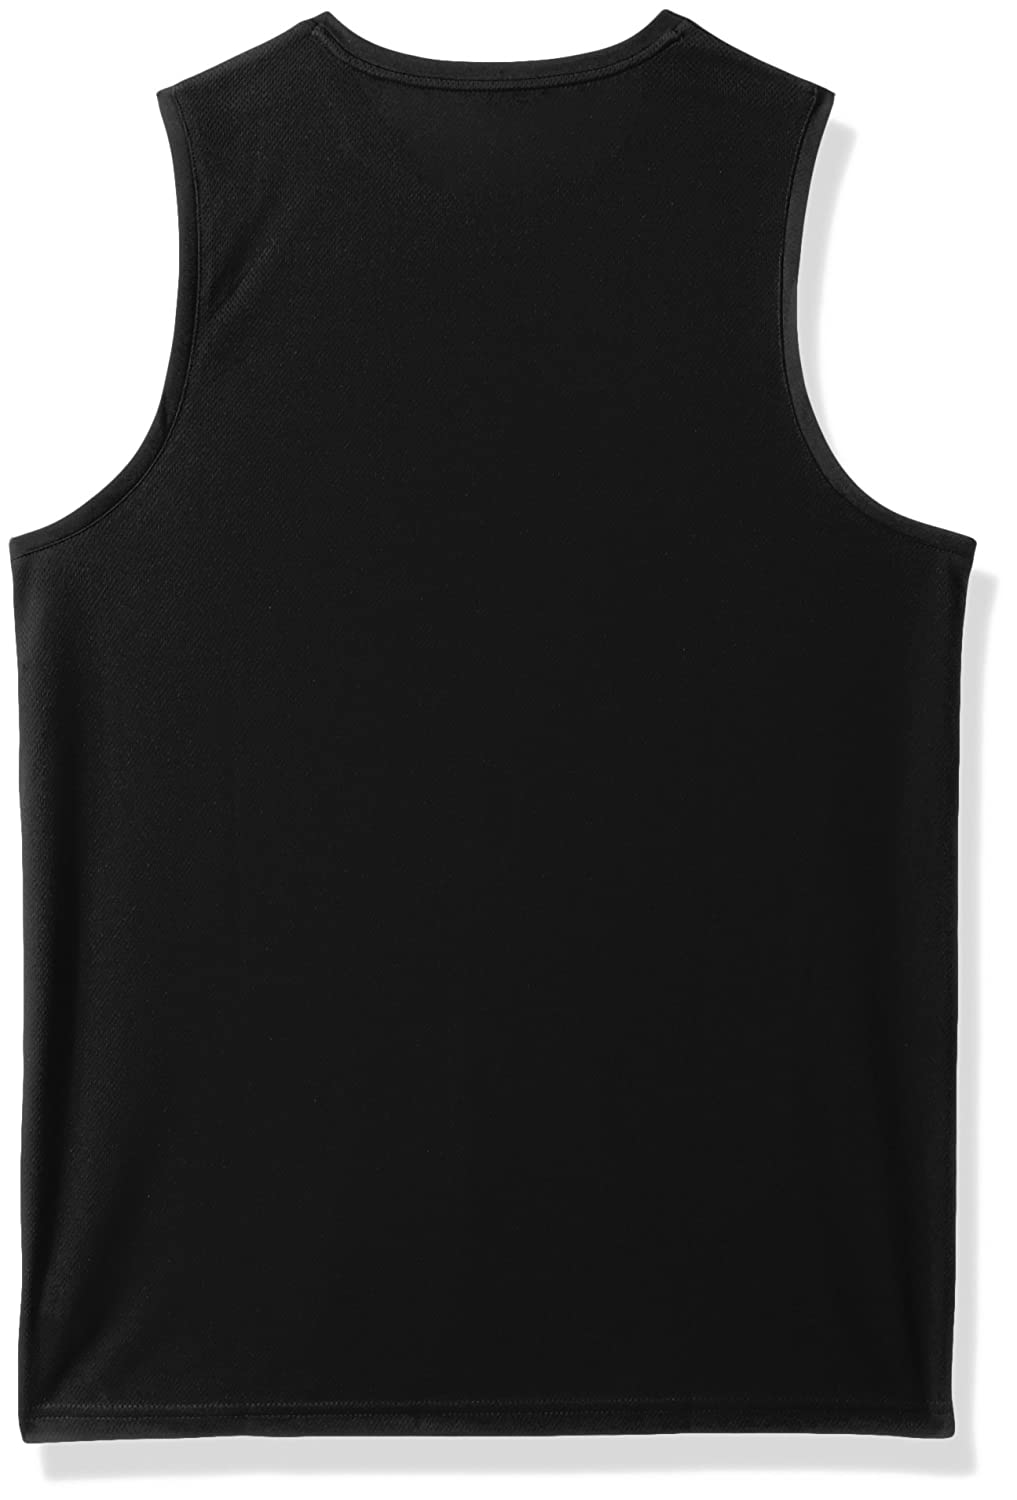 Medium MLS by Outerstuff Boys Fan Gear Tank Black 10-12